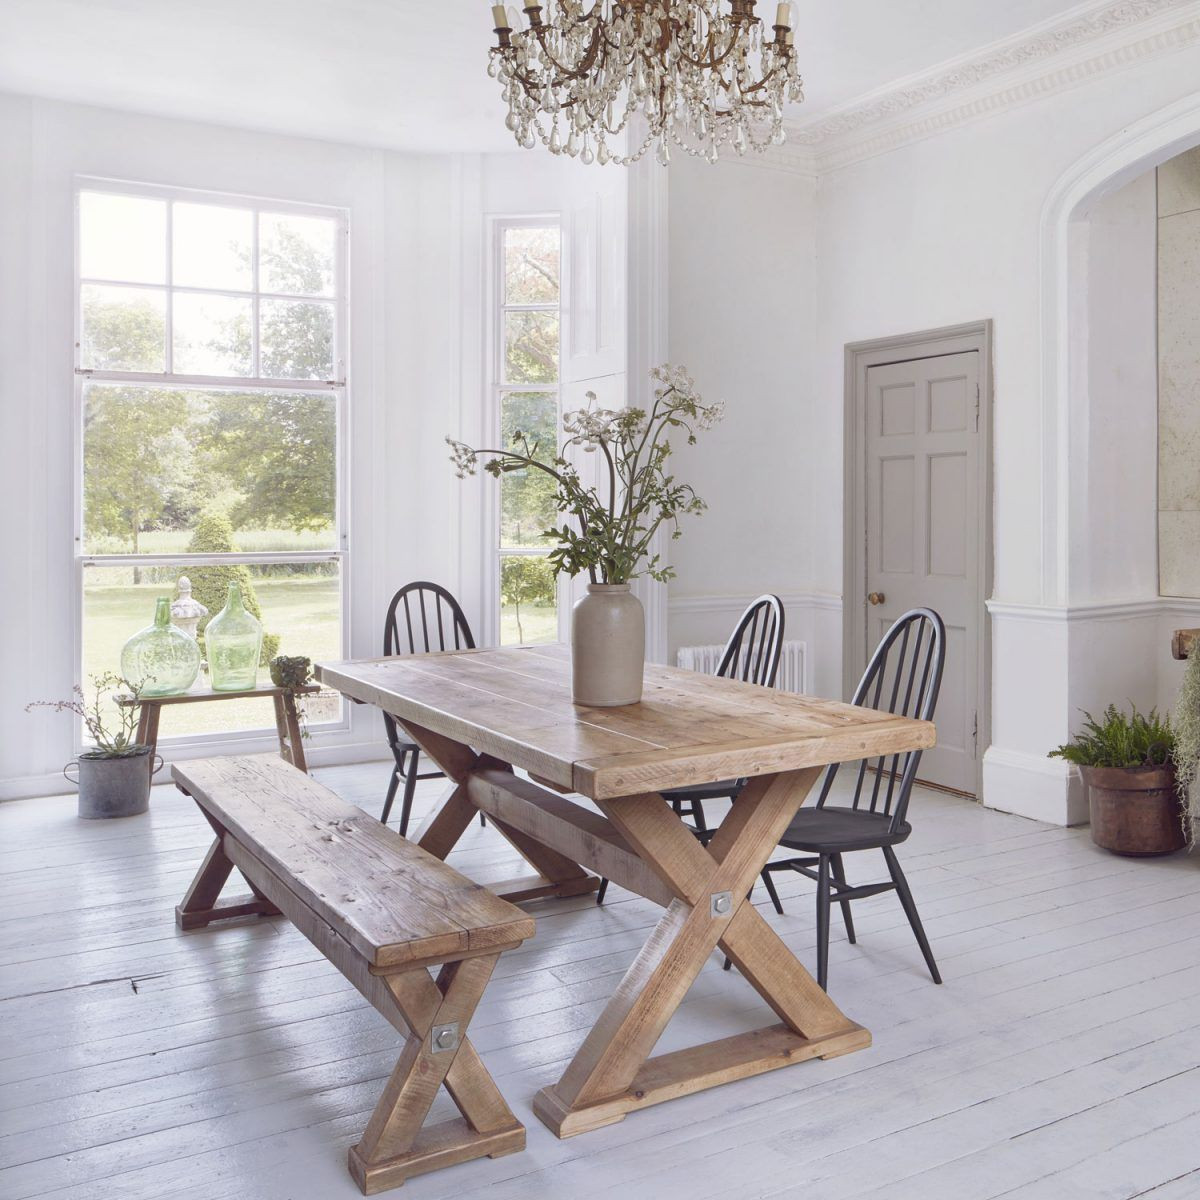 Reclaimed Wood Plank Trestle Dining Table | Home Barn